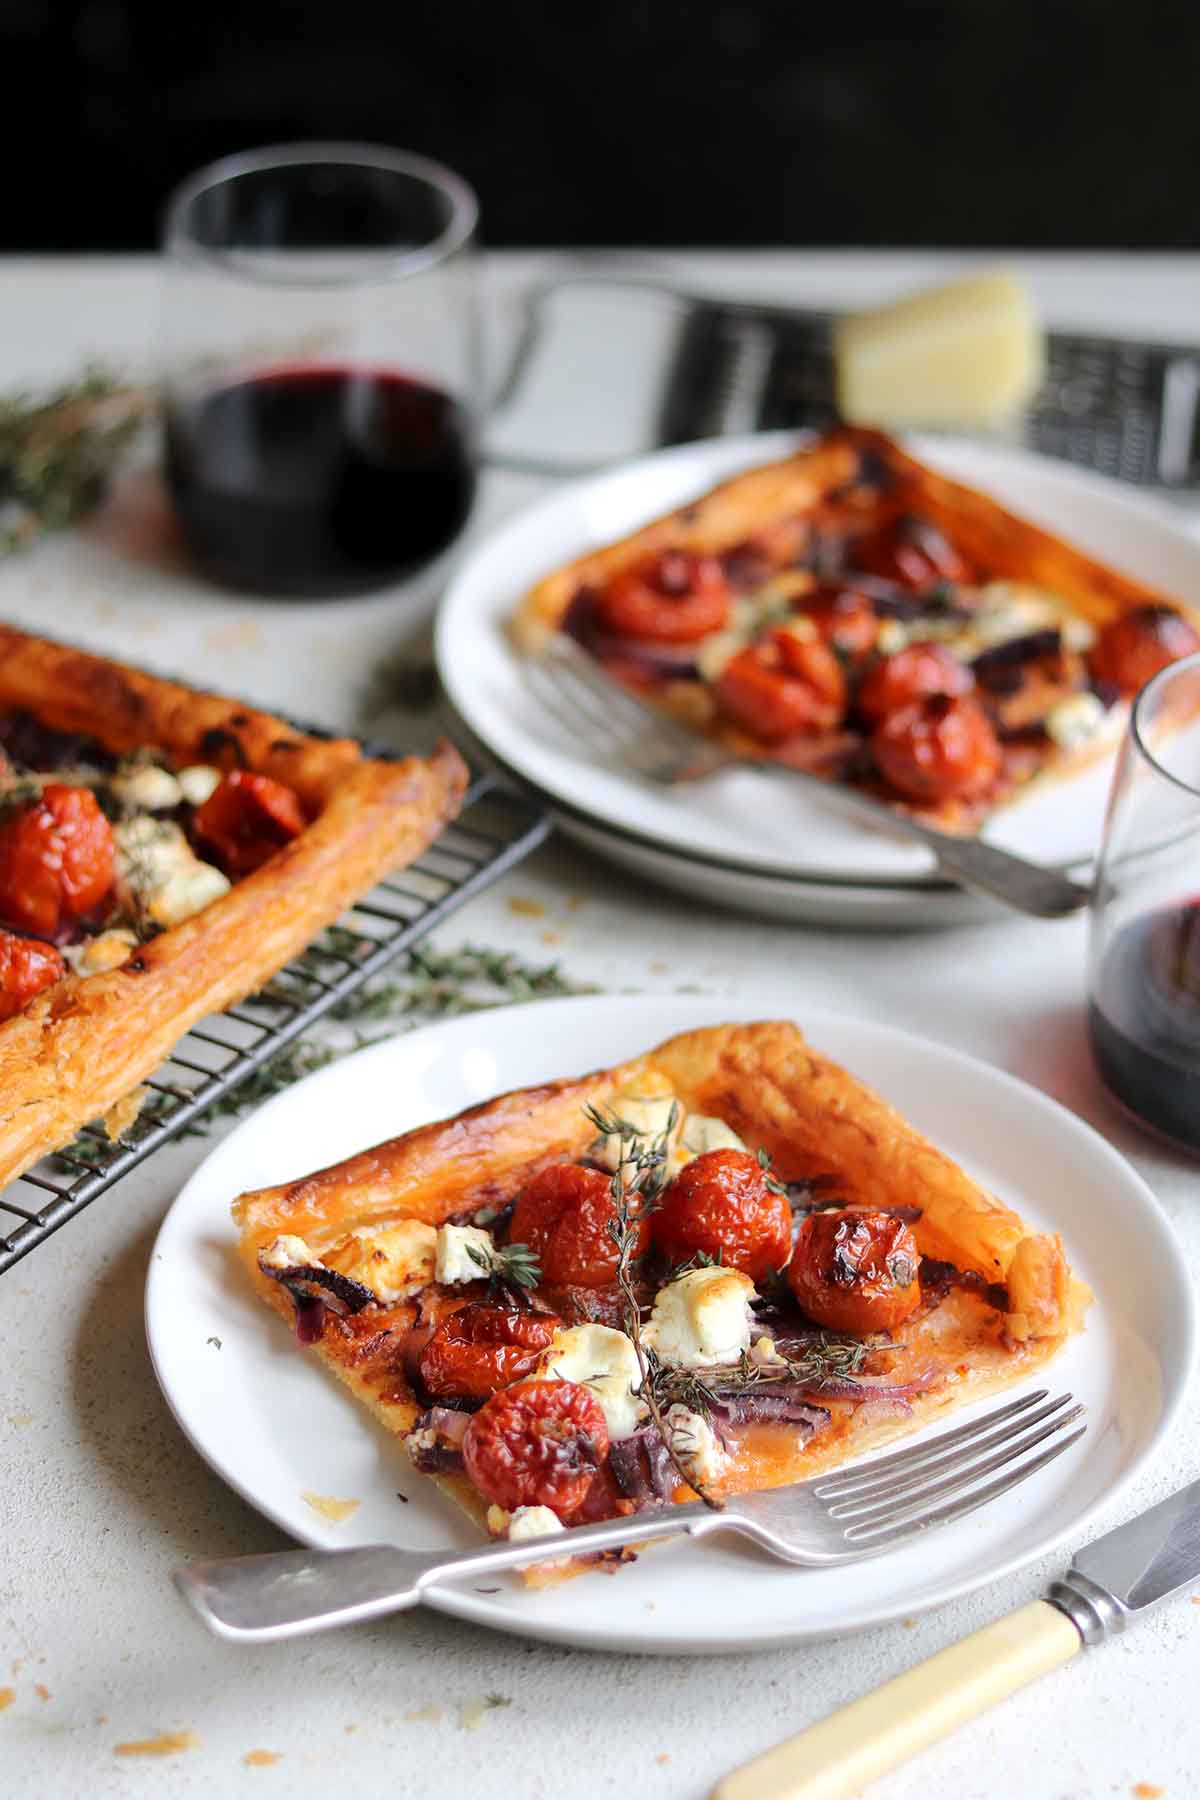 A pastry tart with balsamic roasted tomatoes, goats cheese, with red onions and herbs